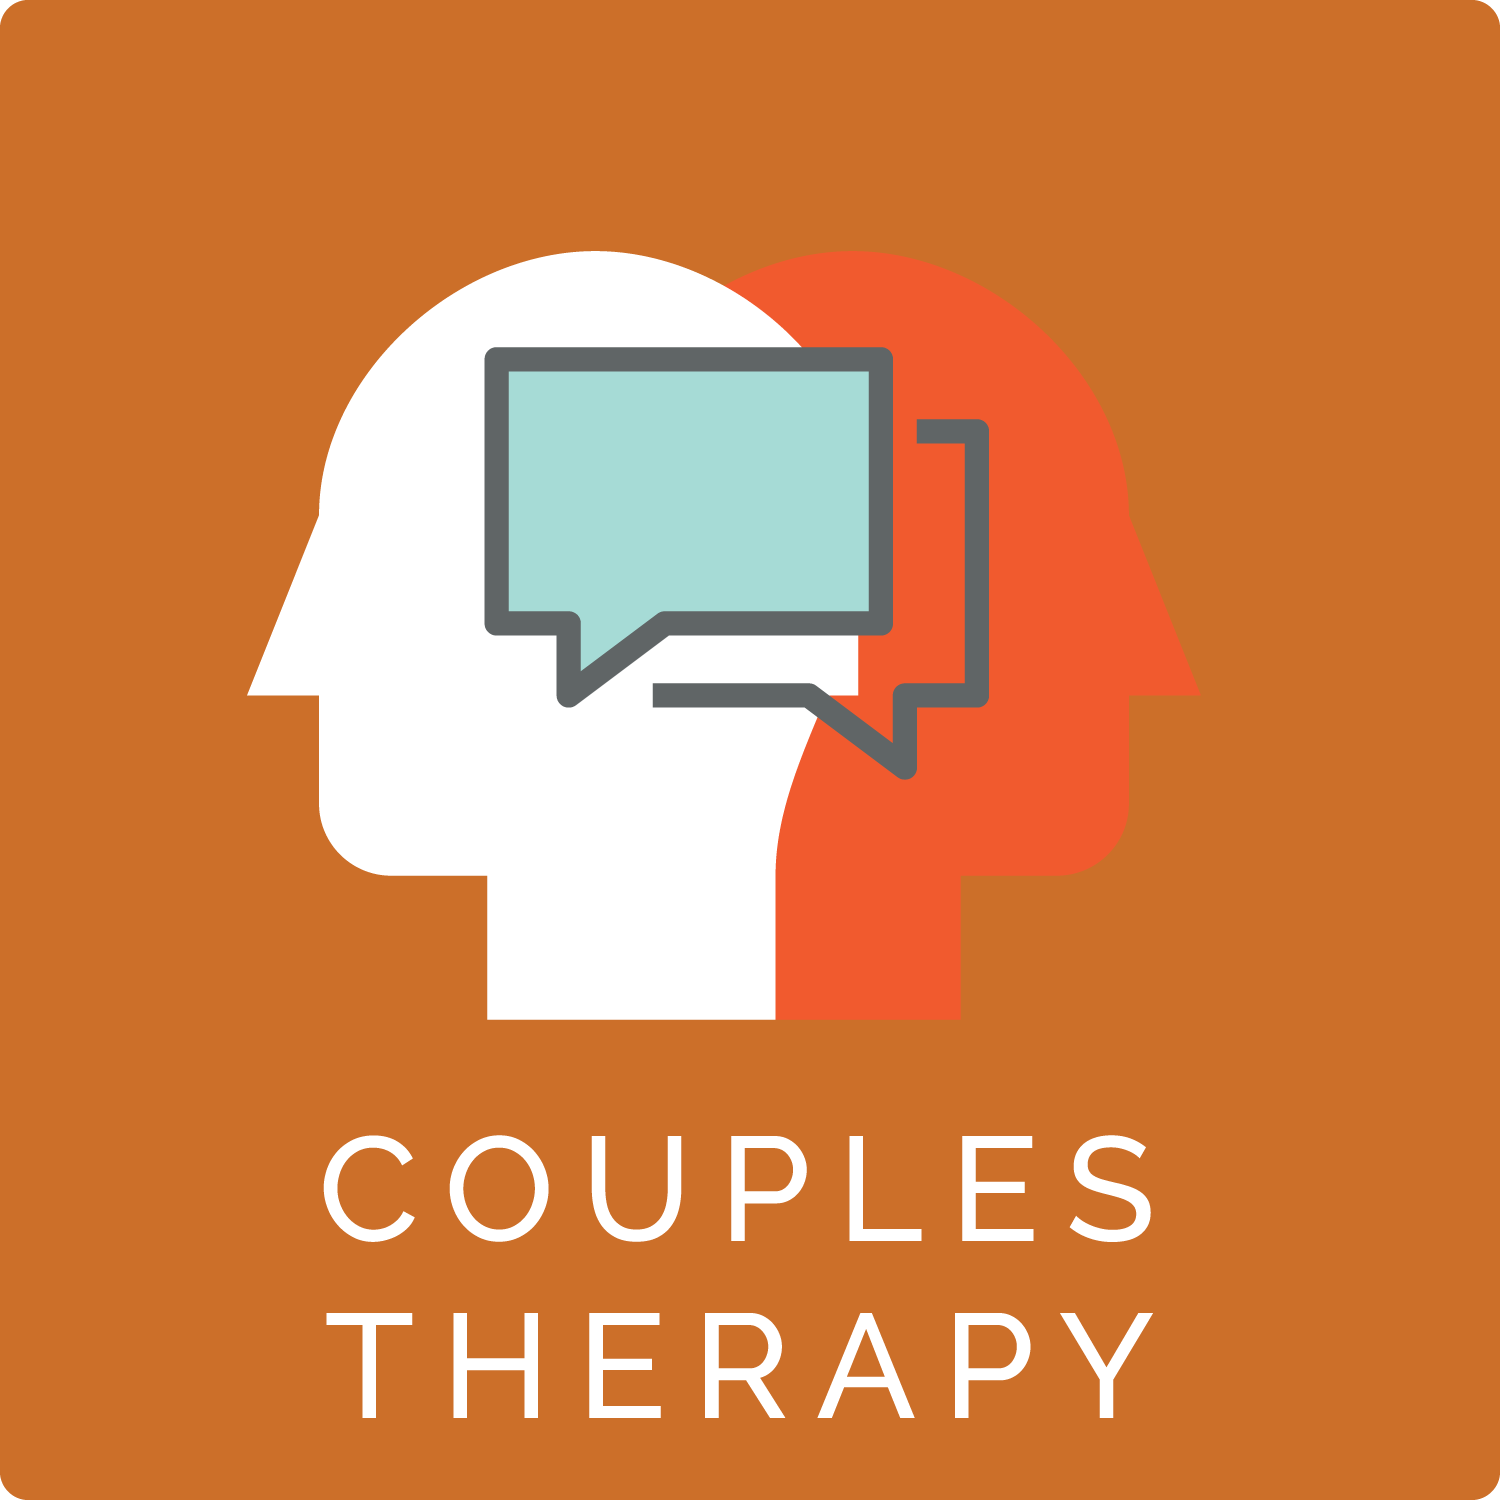 Couples Therapy | Pinnacle Premier